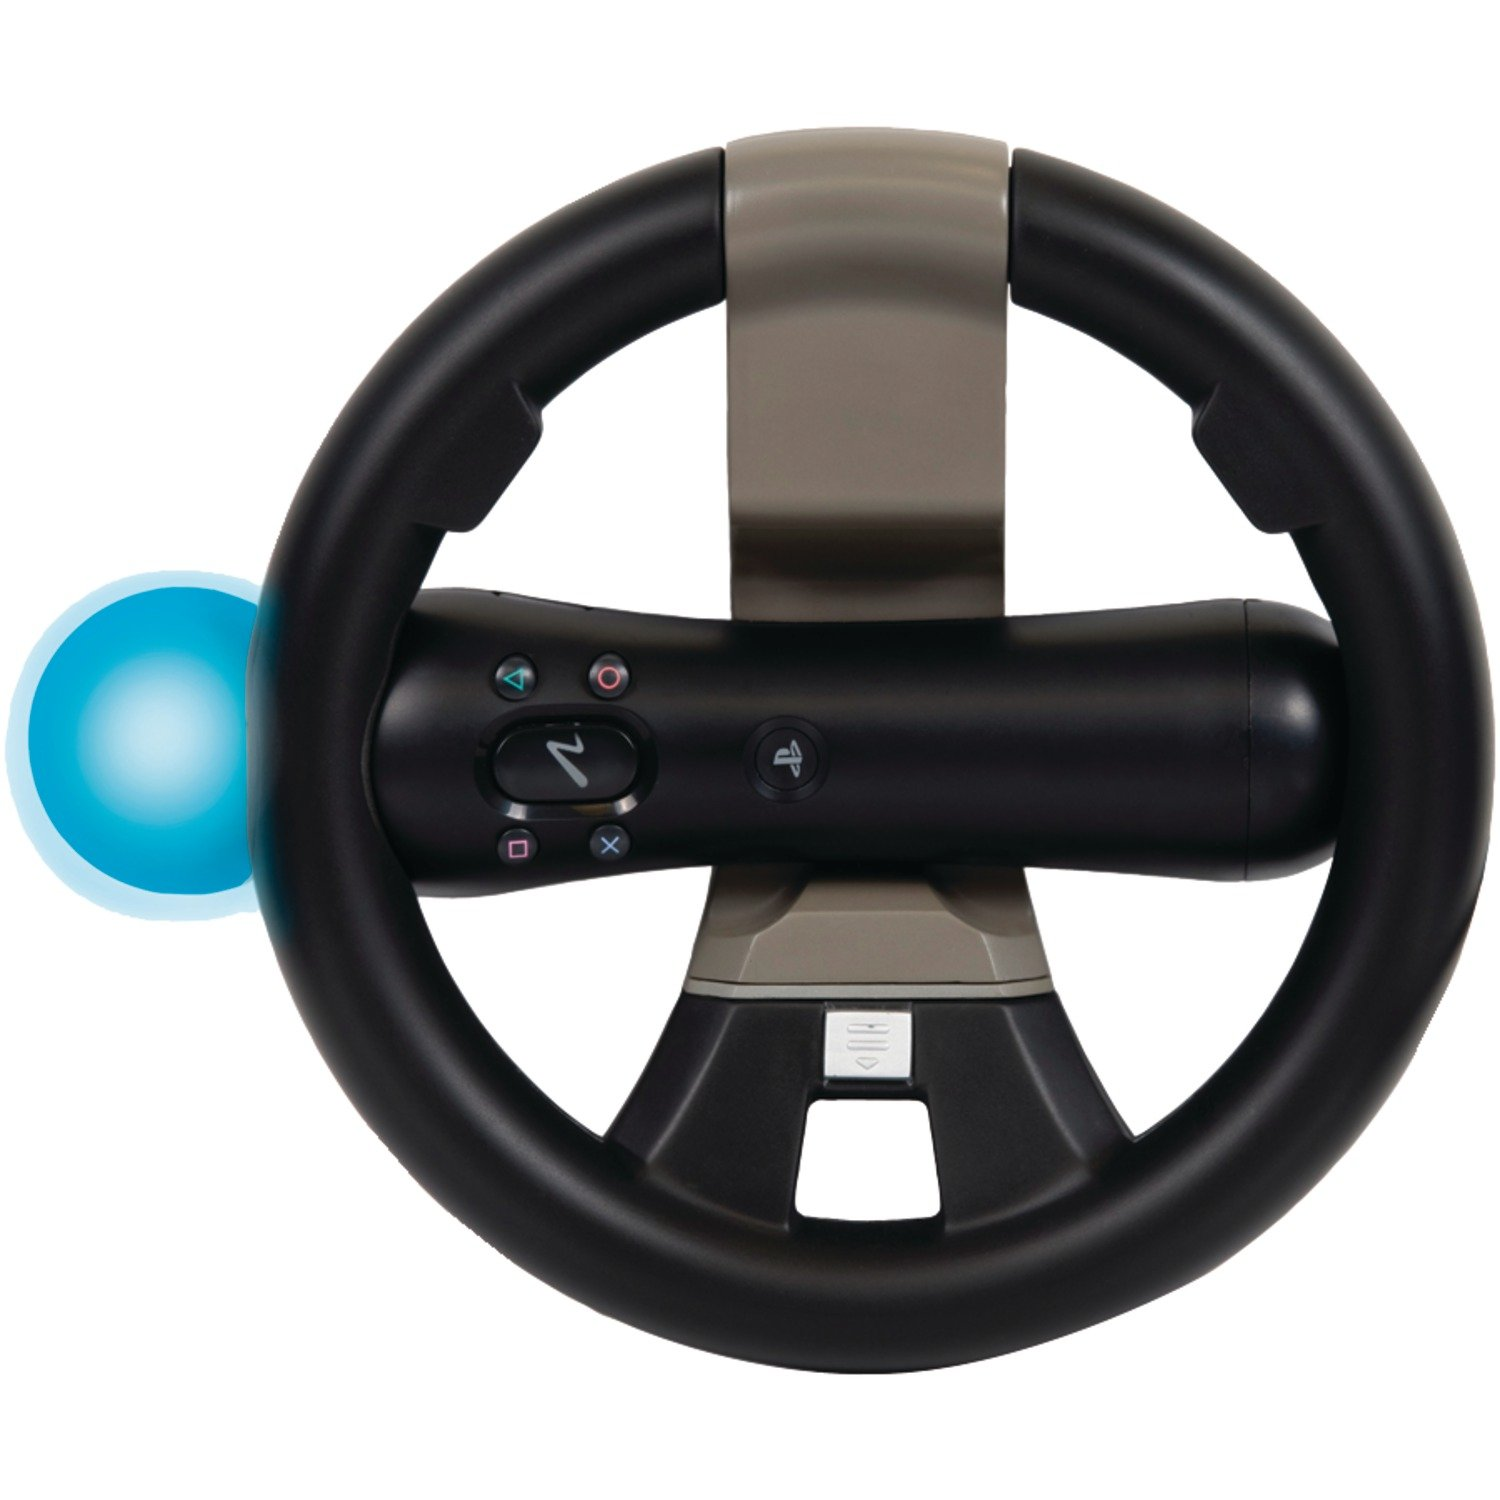 PlayStation Move and DualShock Racing Wheel